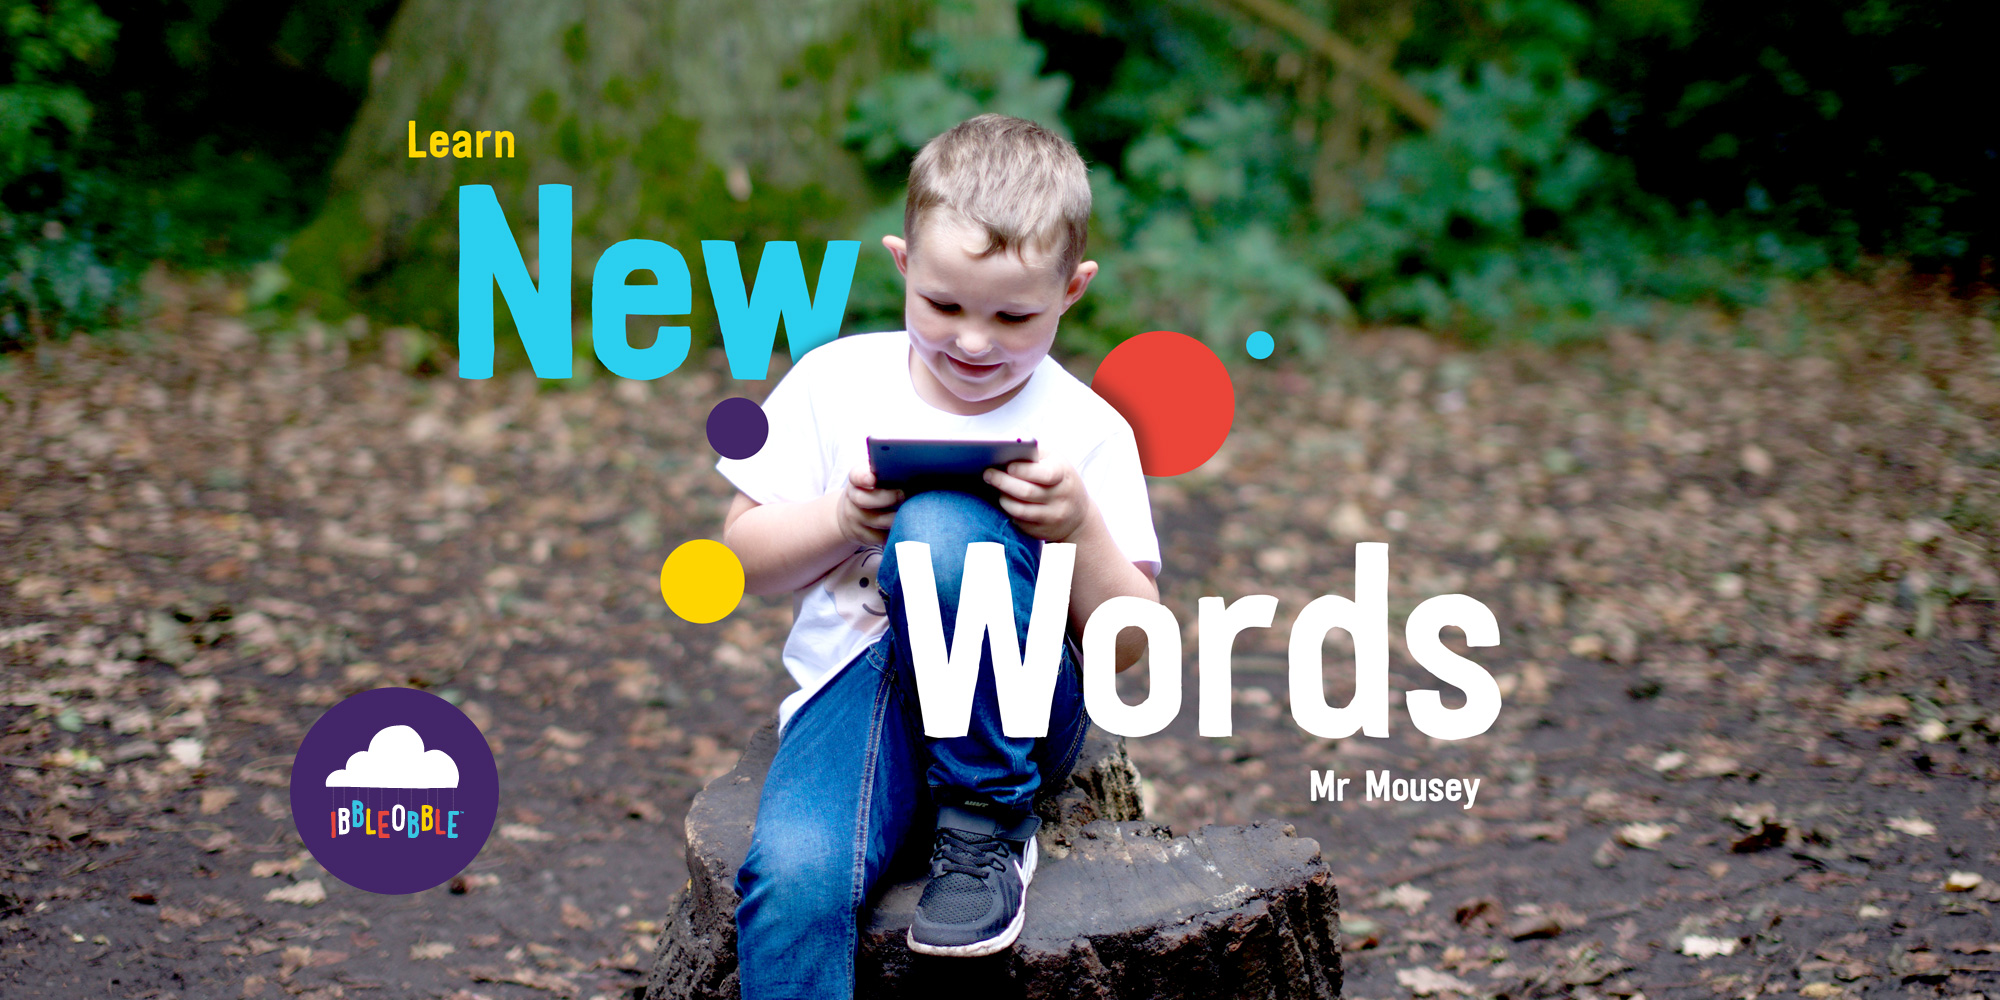 Educational Game For Kids - Words with Ibbleobble